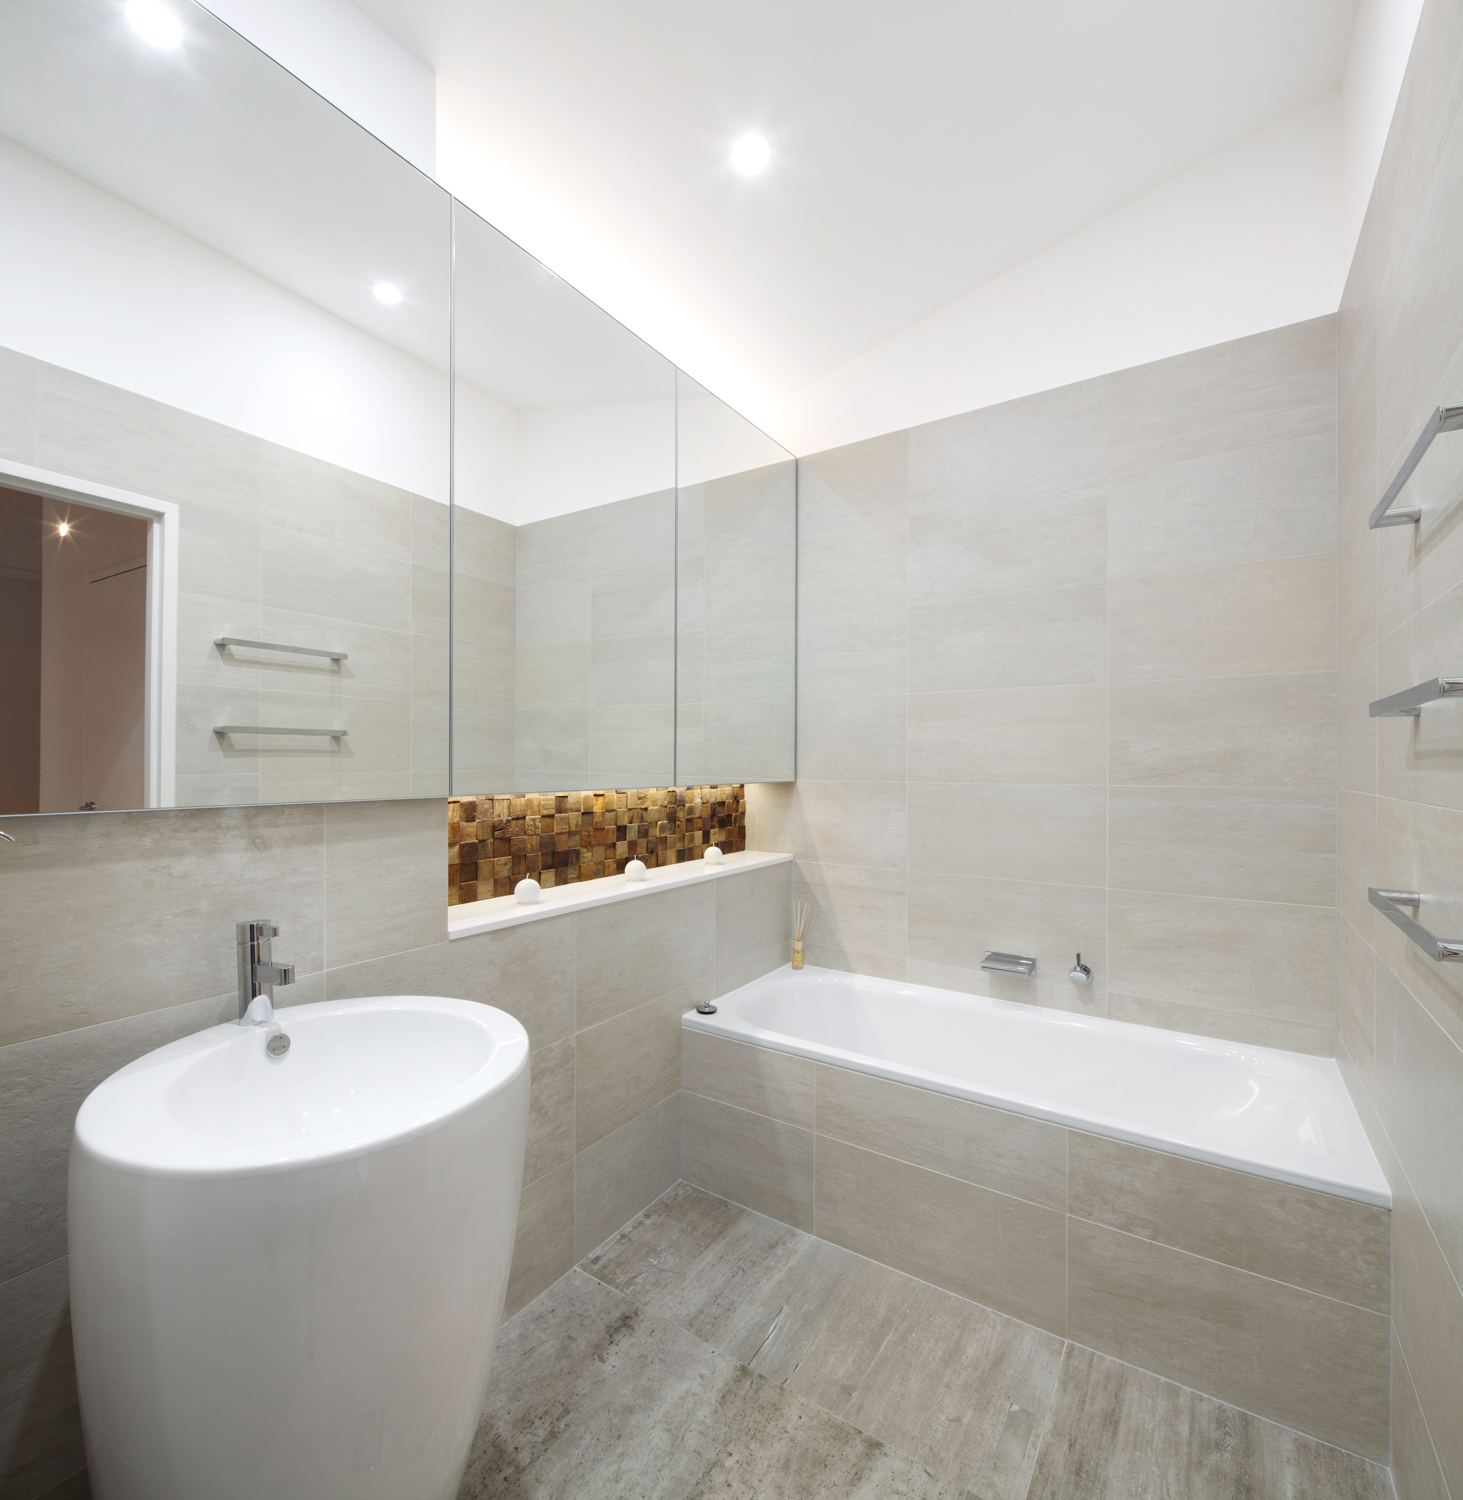 Bathroom Design Recycle With Style Completehome